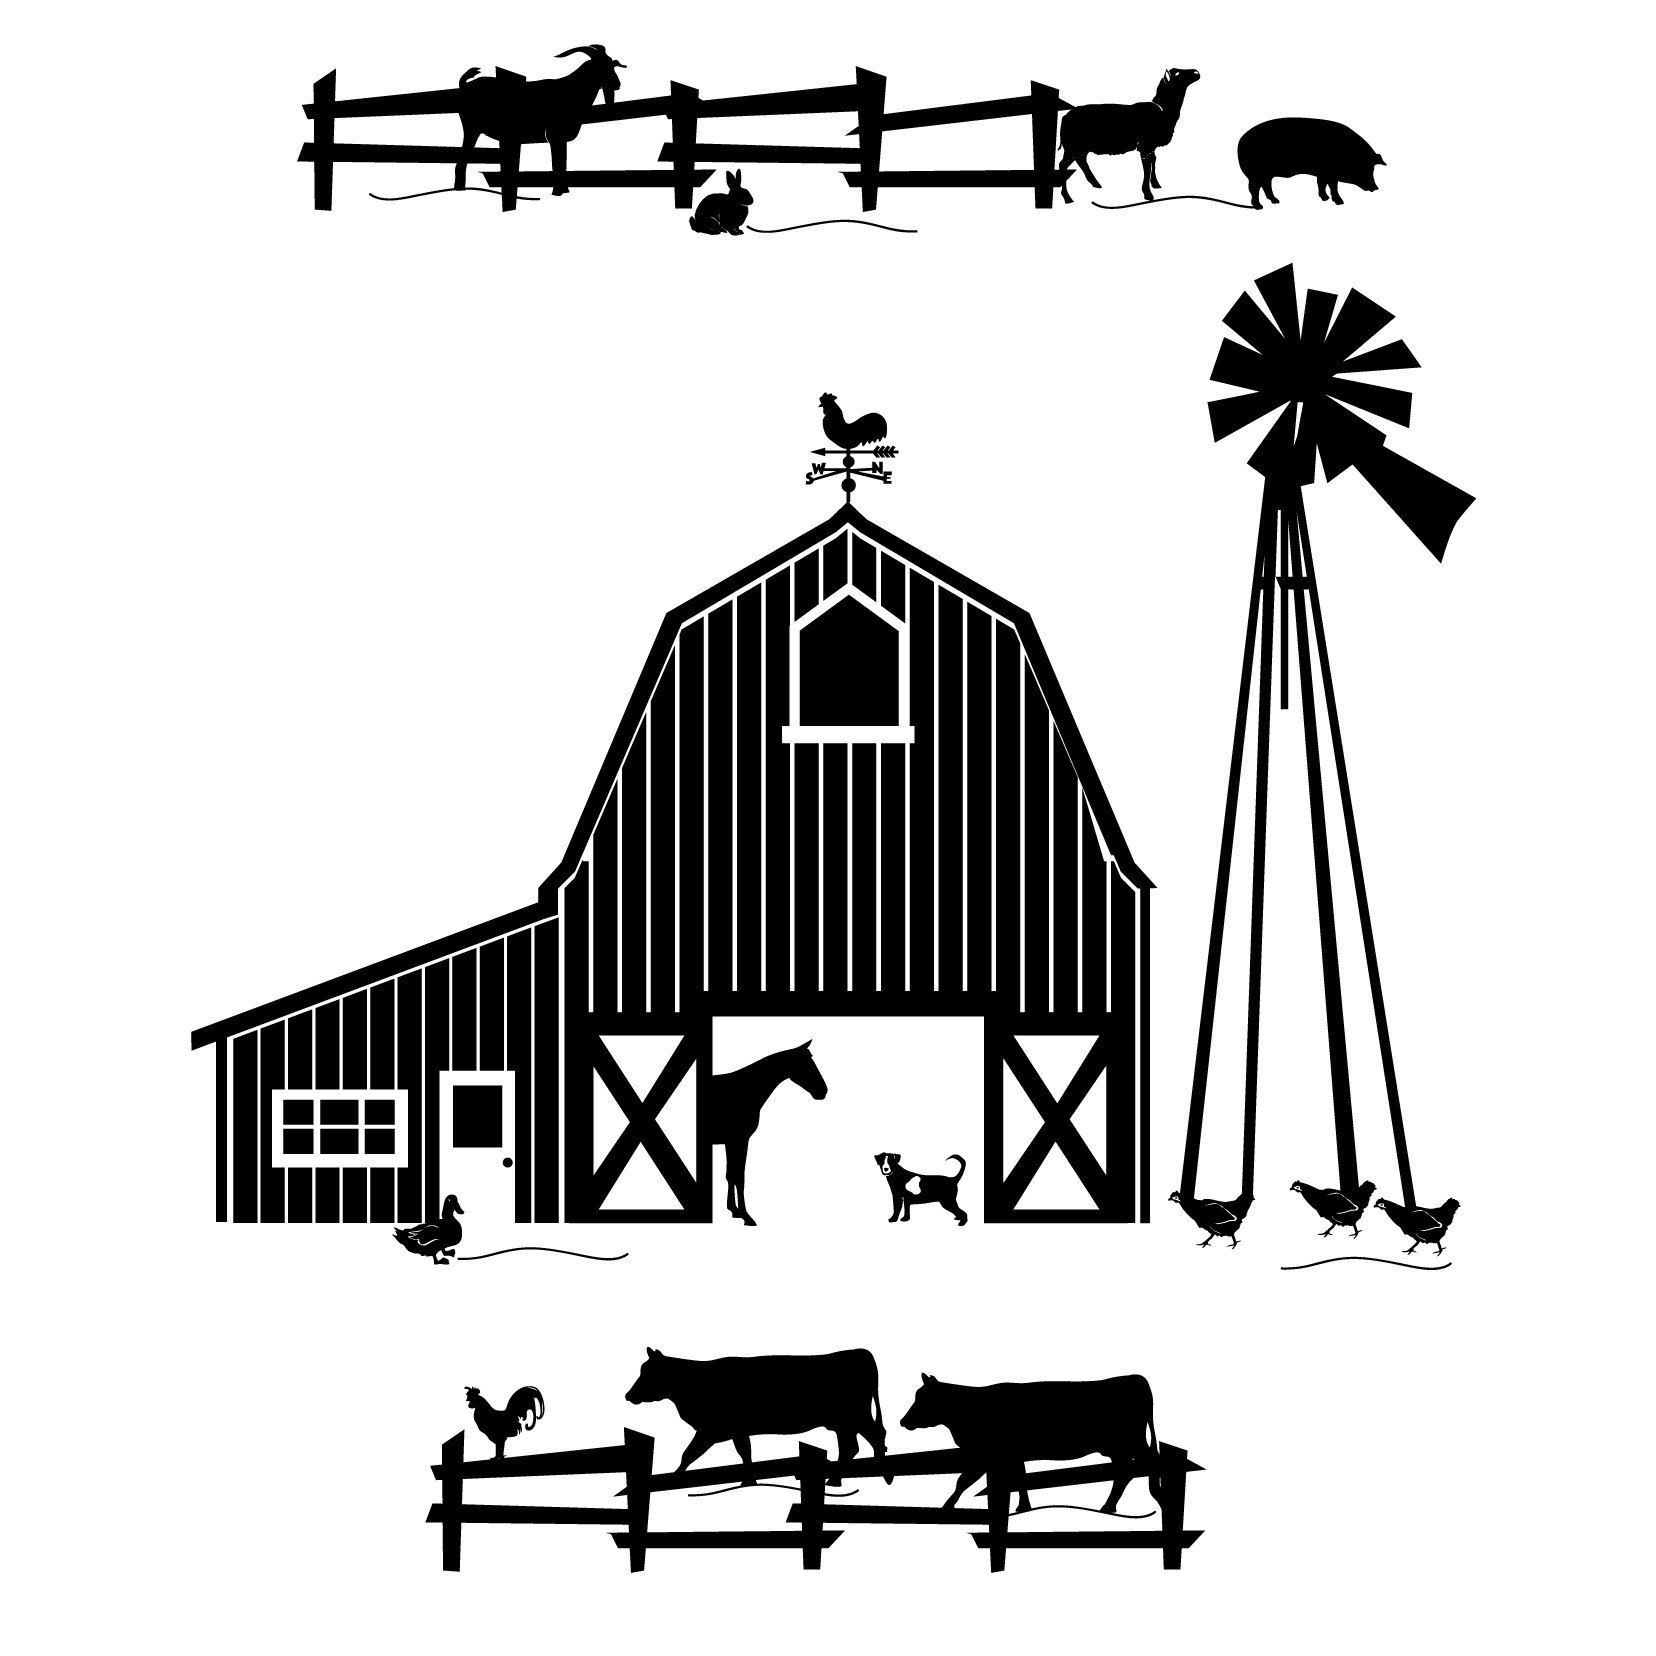 Watermill clipart country scene And black scene clipart Search